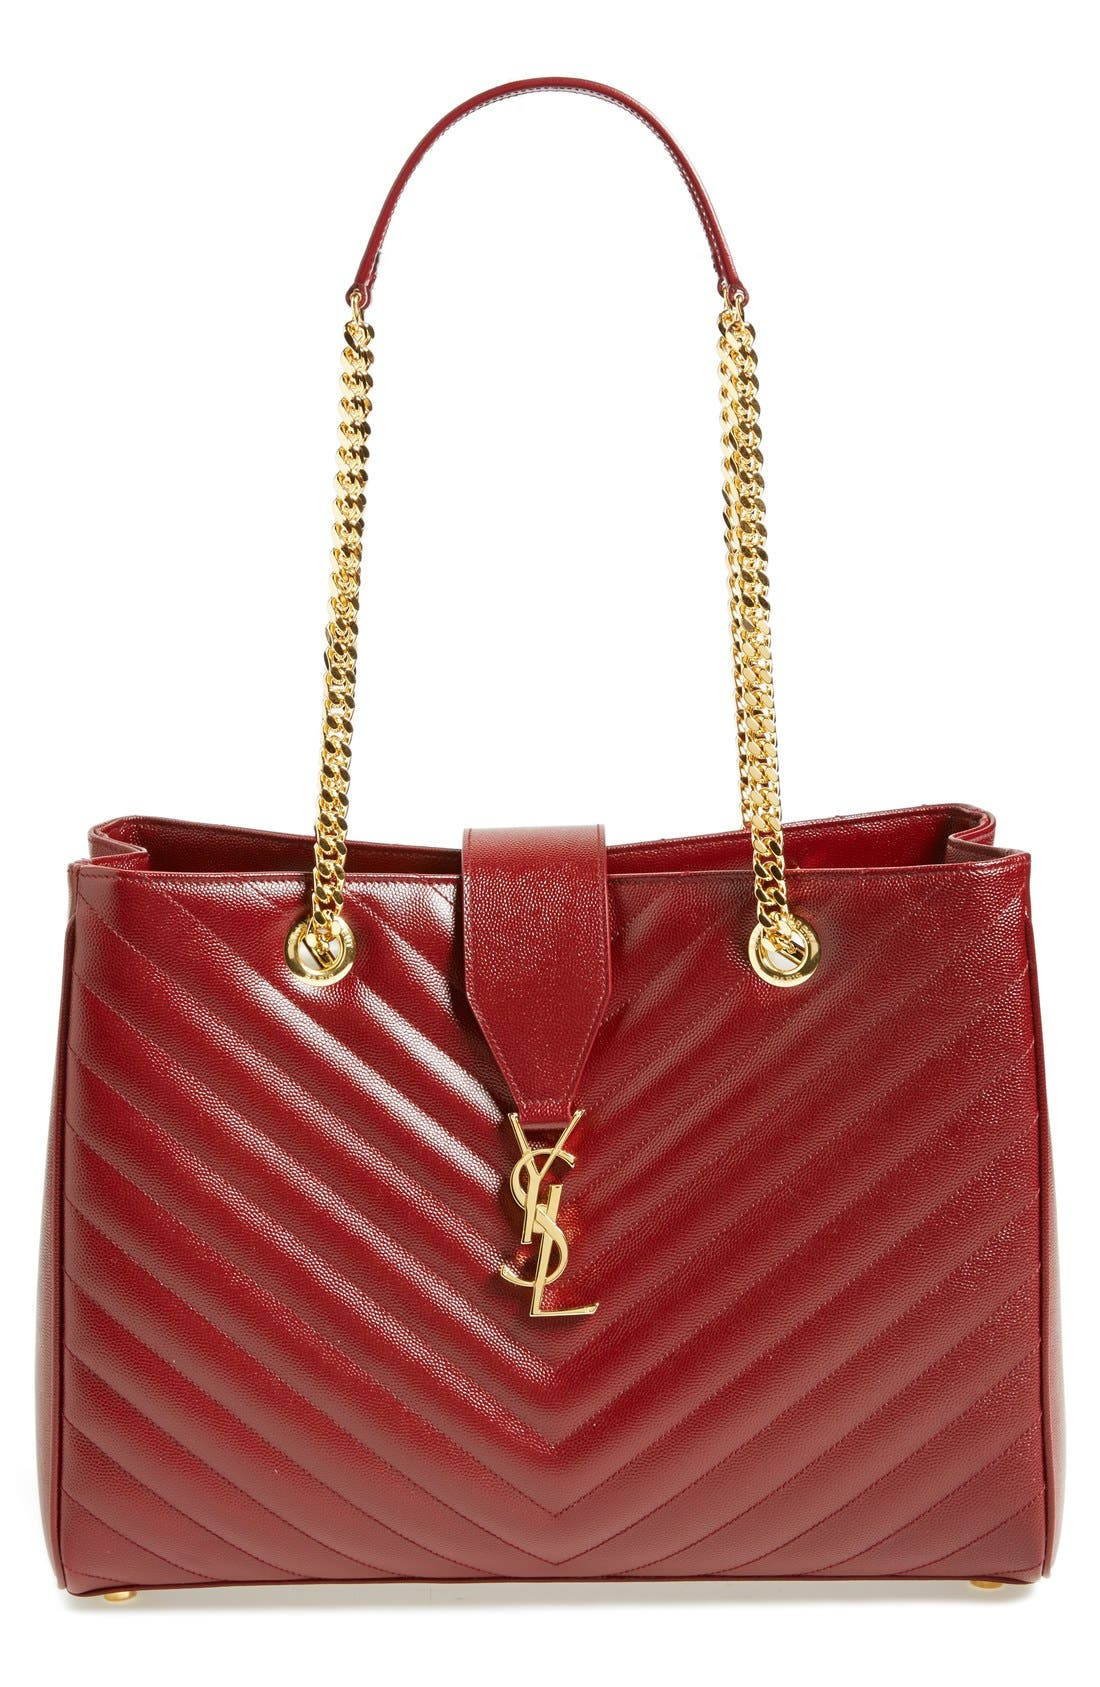 Main Image - Saint Laurent 'Monogram' Grained Leather Shopper